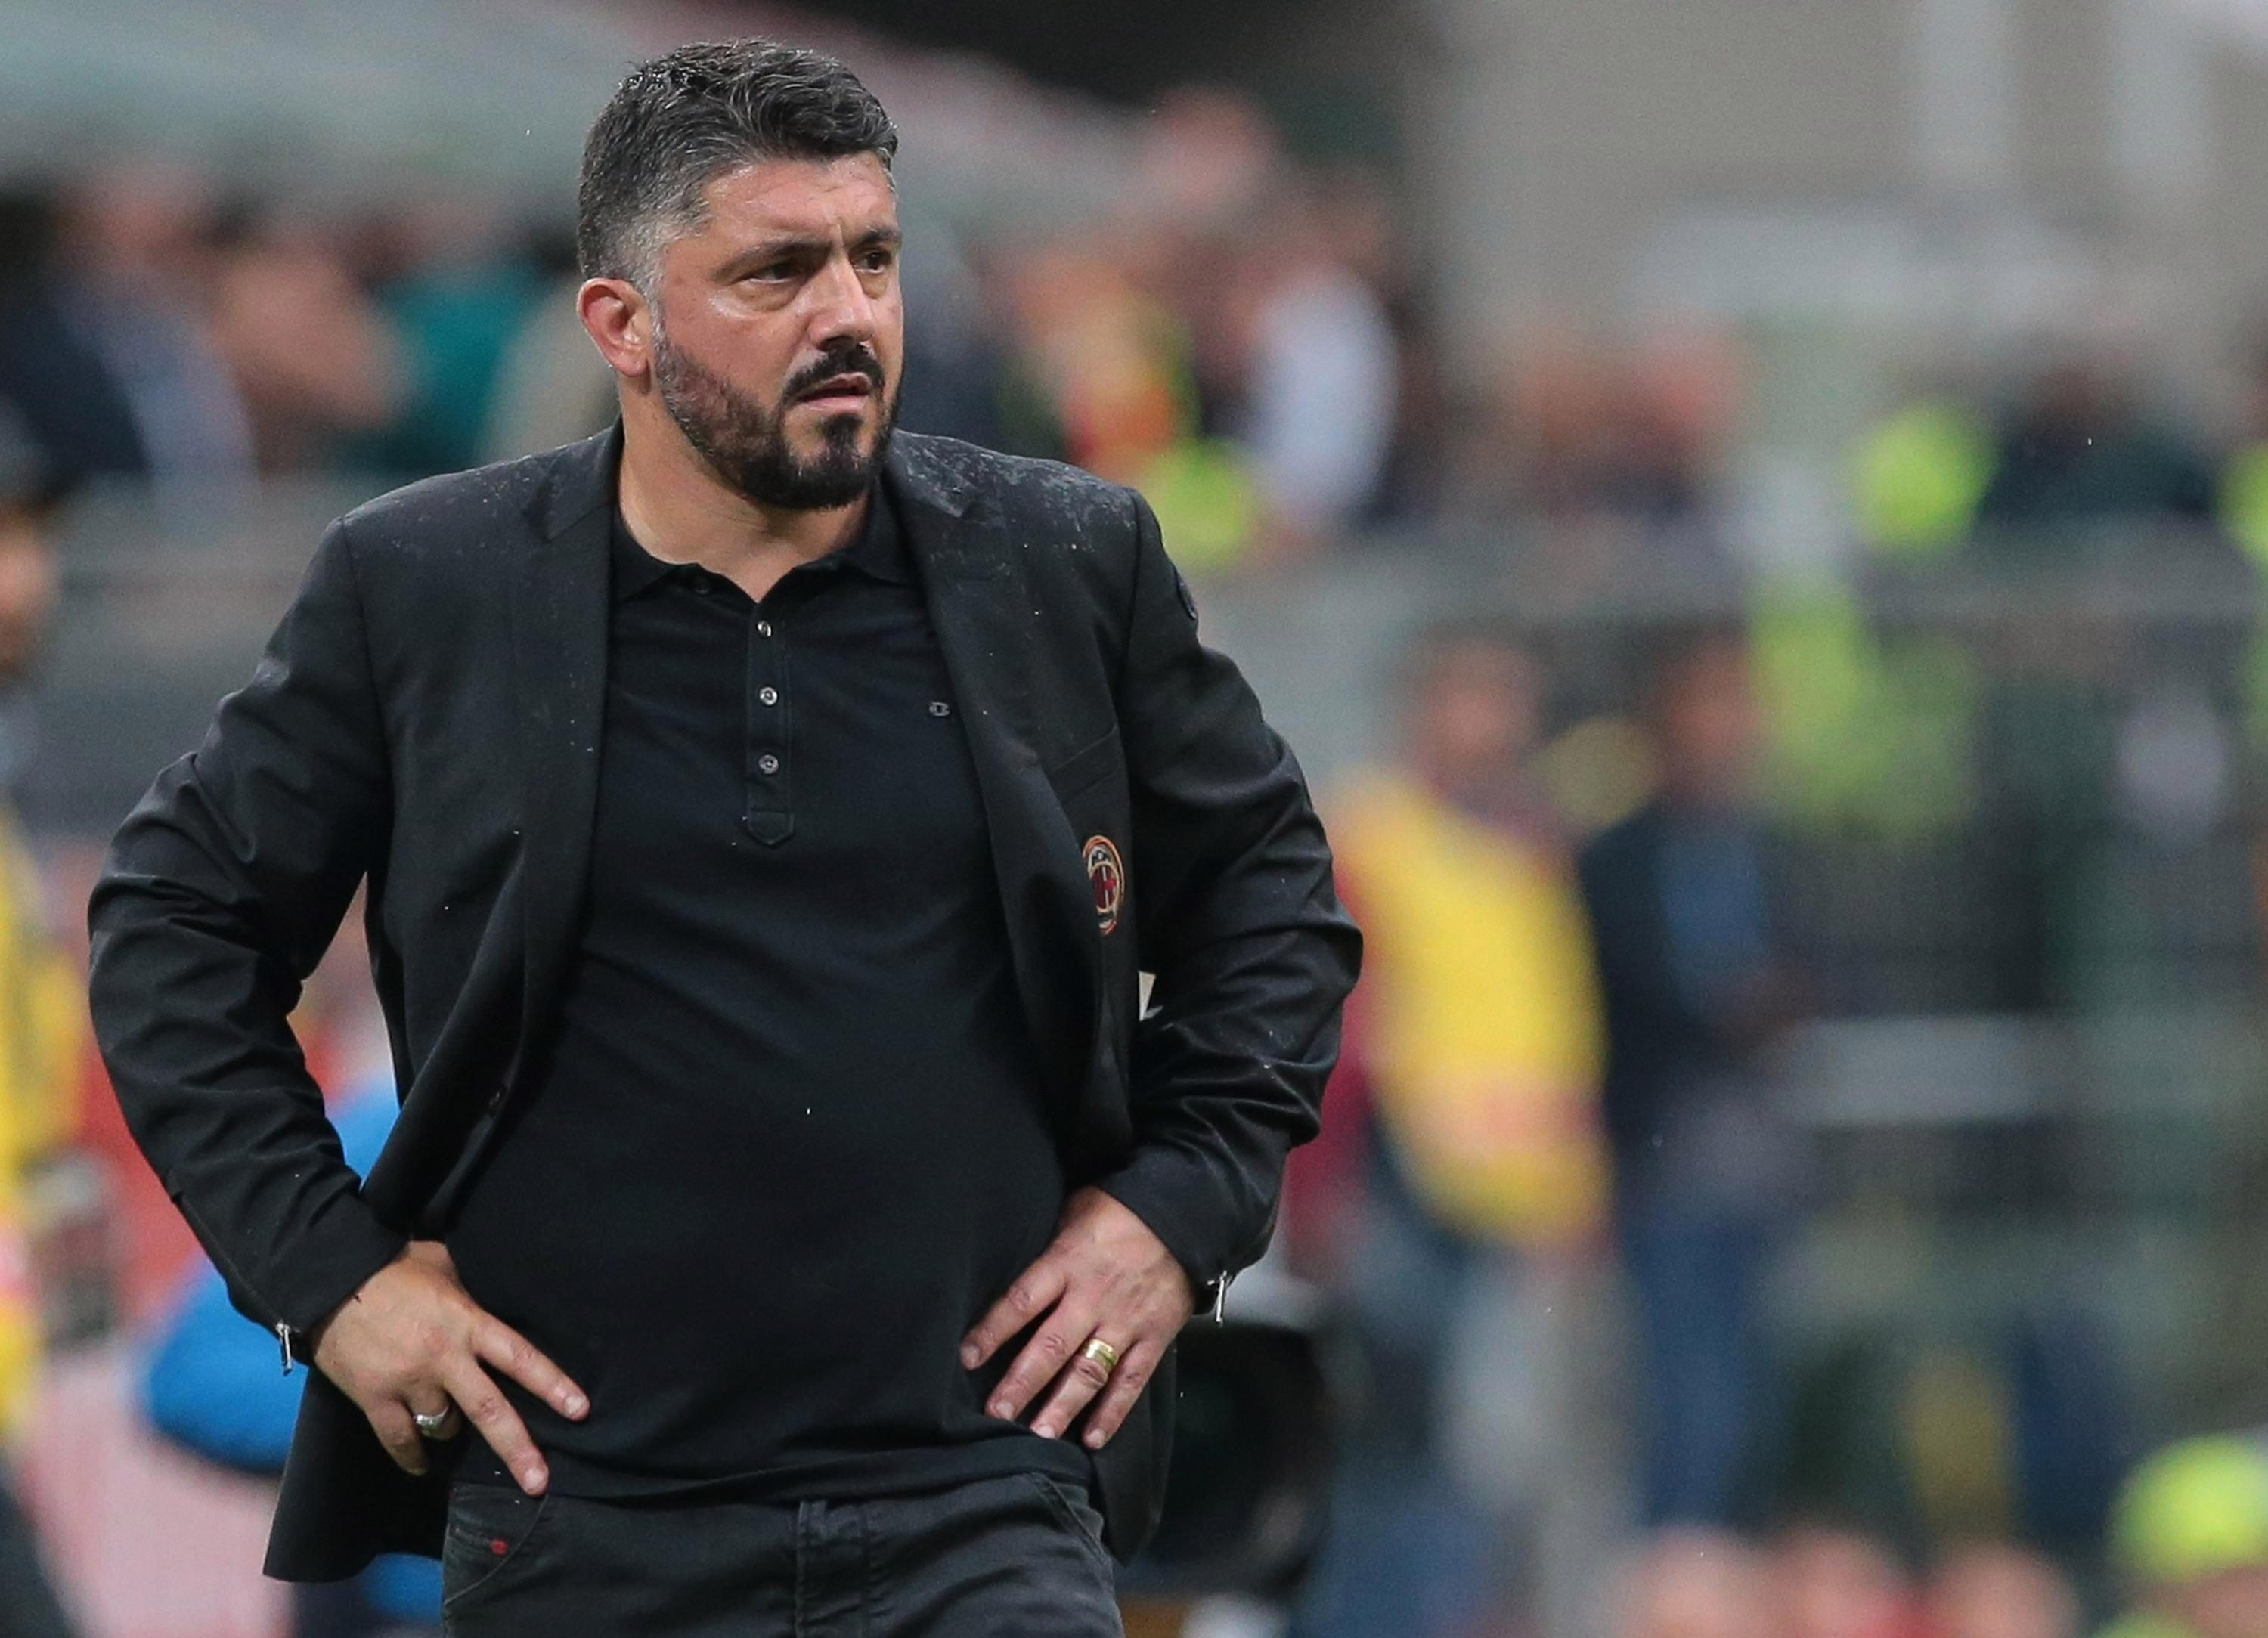 AC Milan Gennaro Gattuso recently signed a new deal but will not be managing in a European competition with them next season